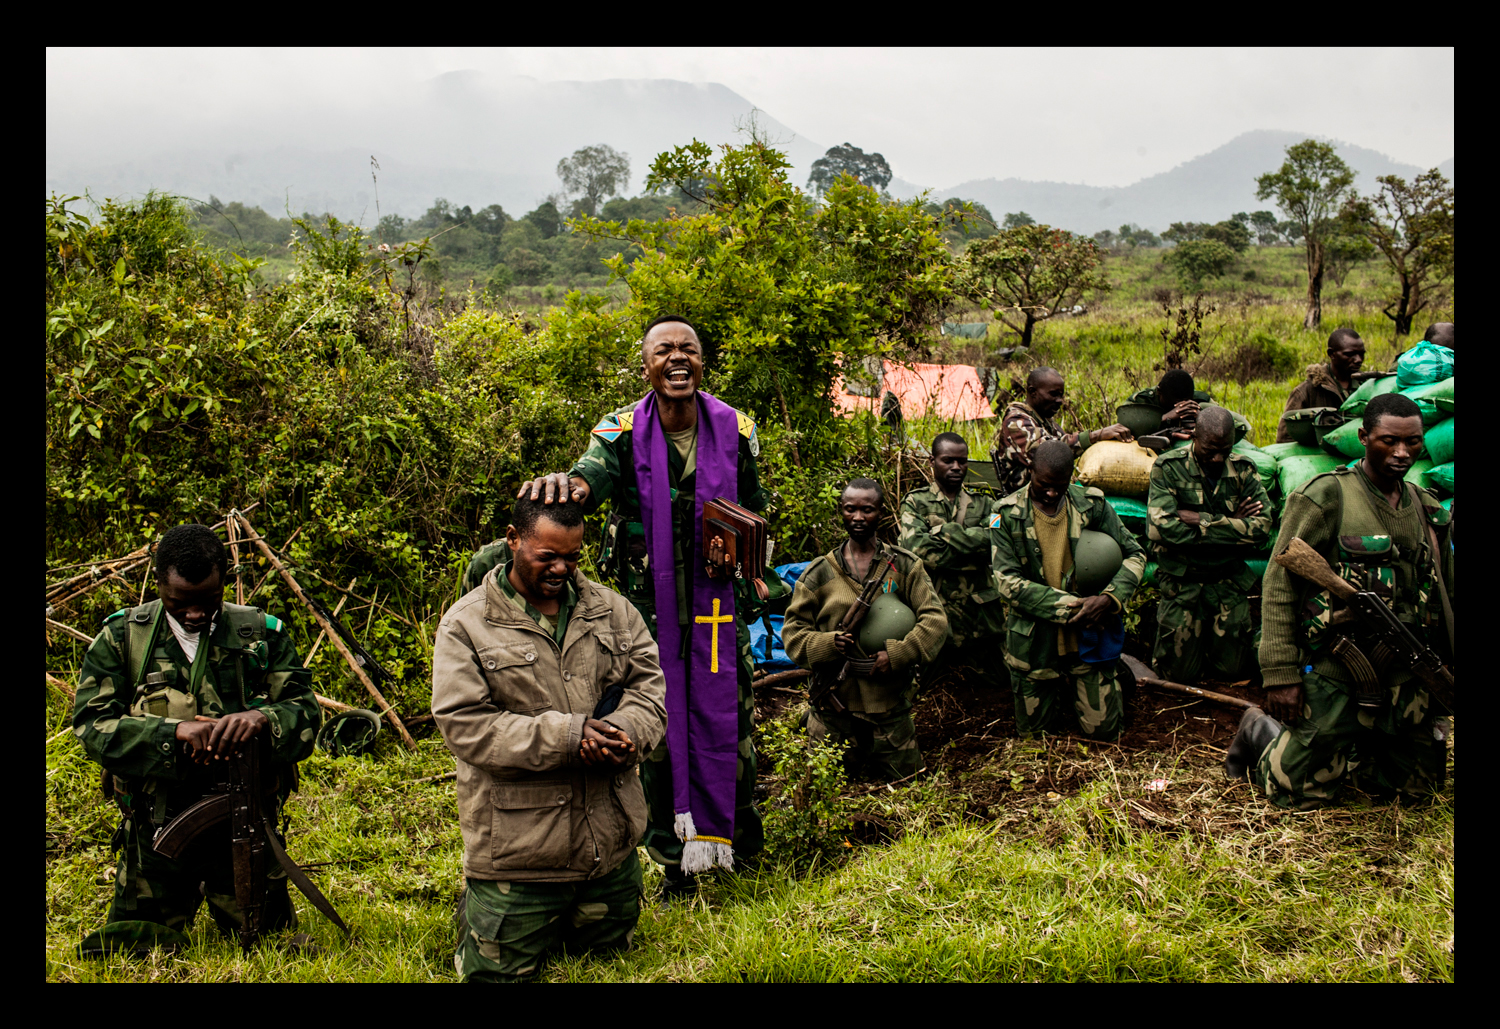 A Congolese military chaplain prays with the soldiers